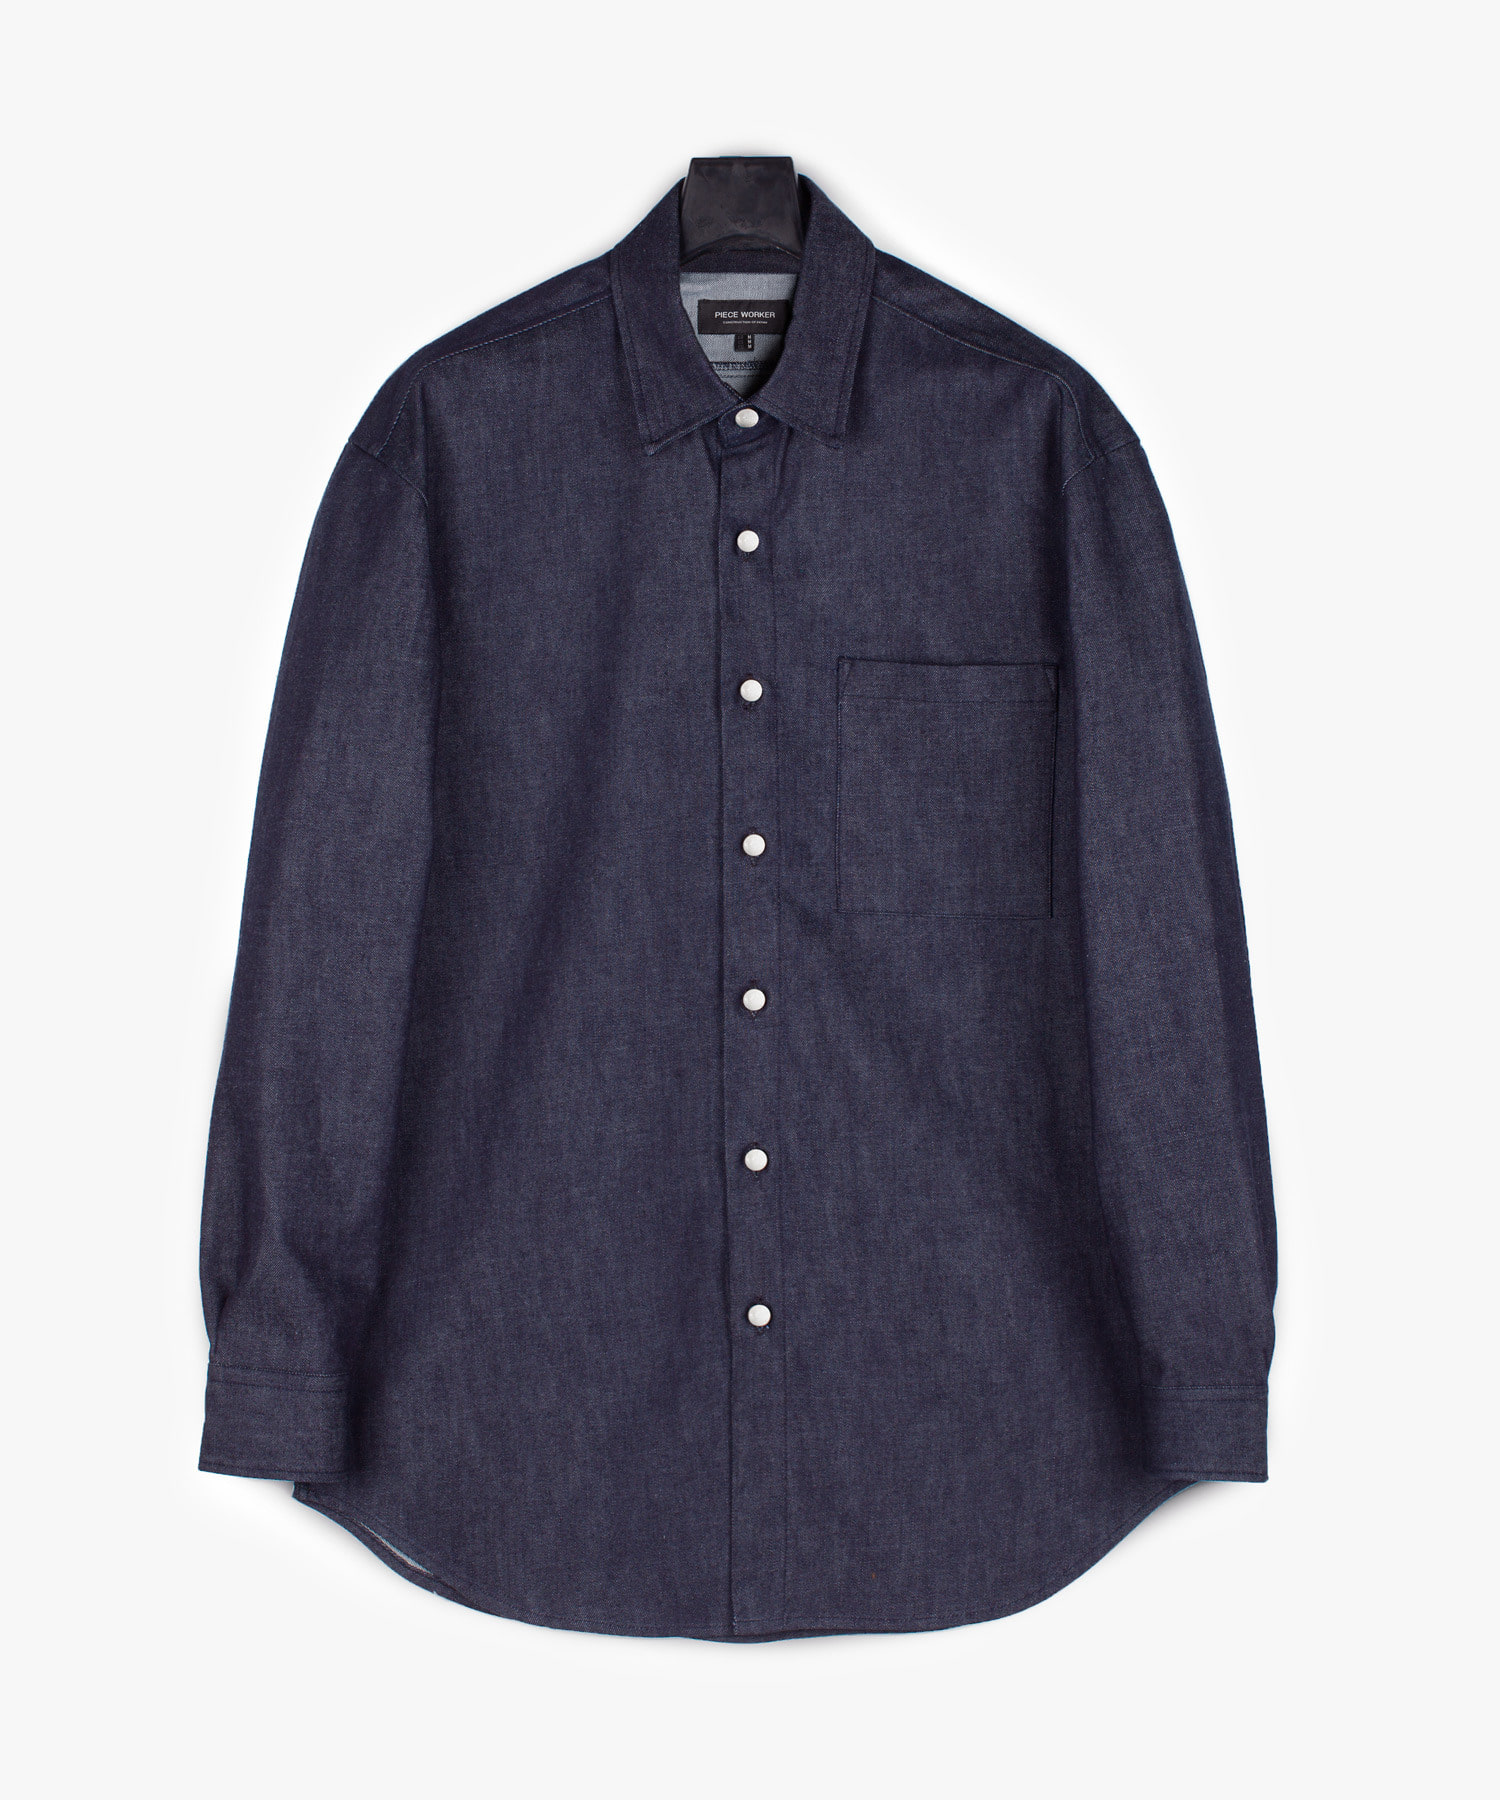 Street Denim Shirt - Indigo